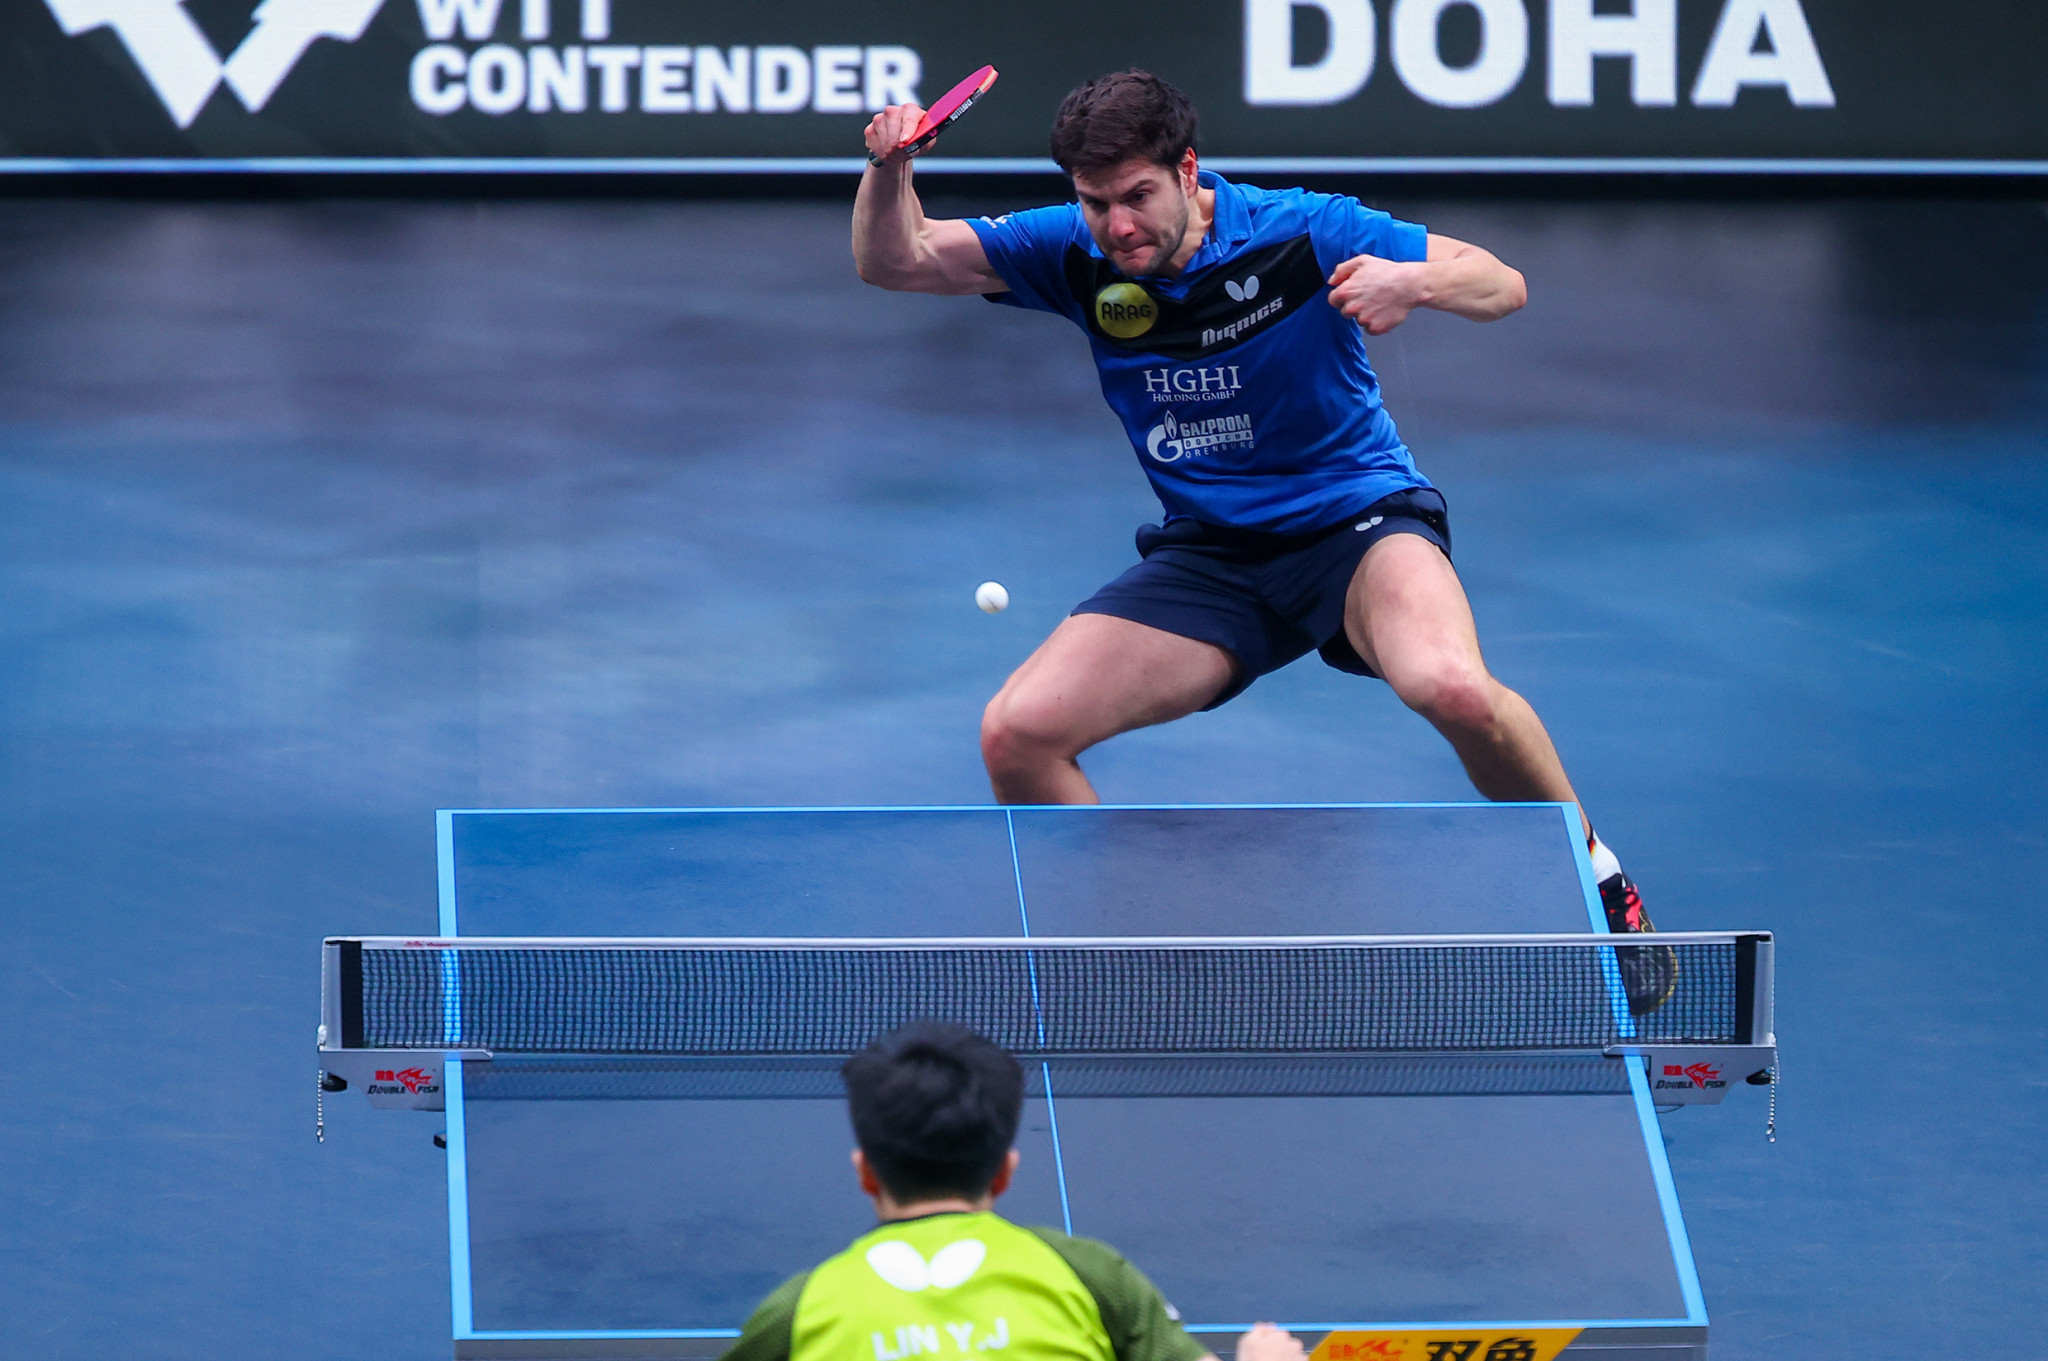 Doha hosted a World Table Tennis hub earlier this year ©Getty Images